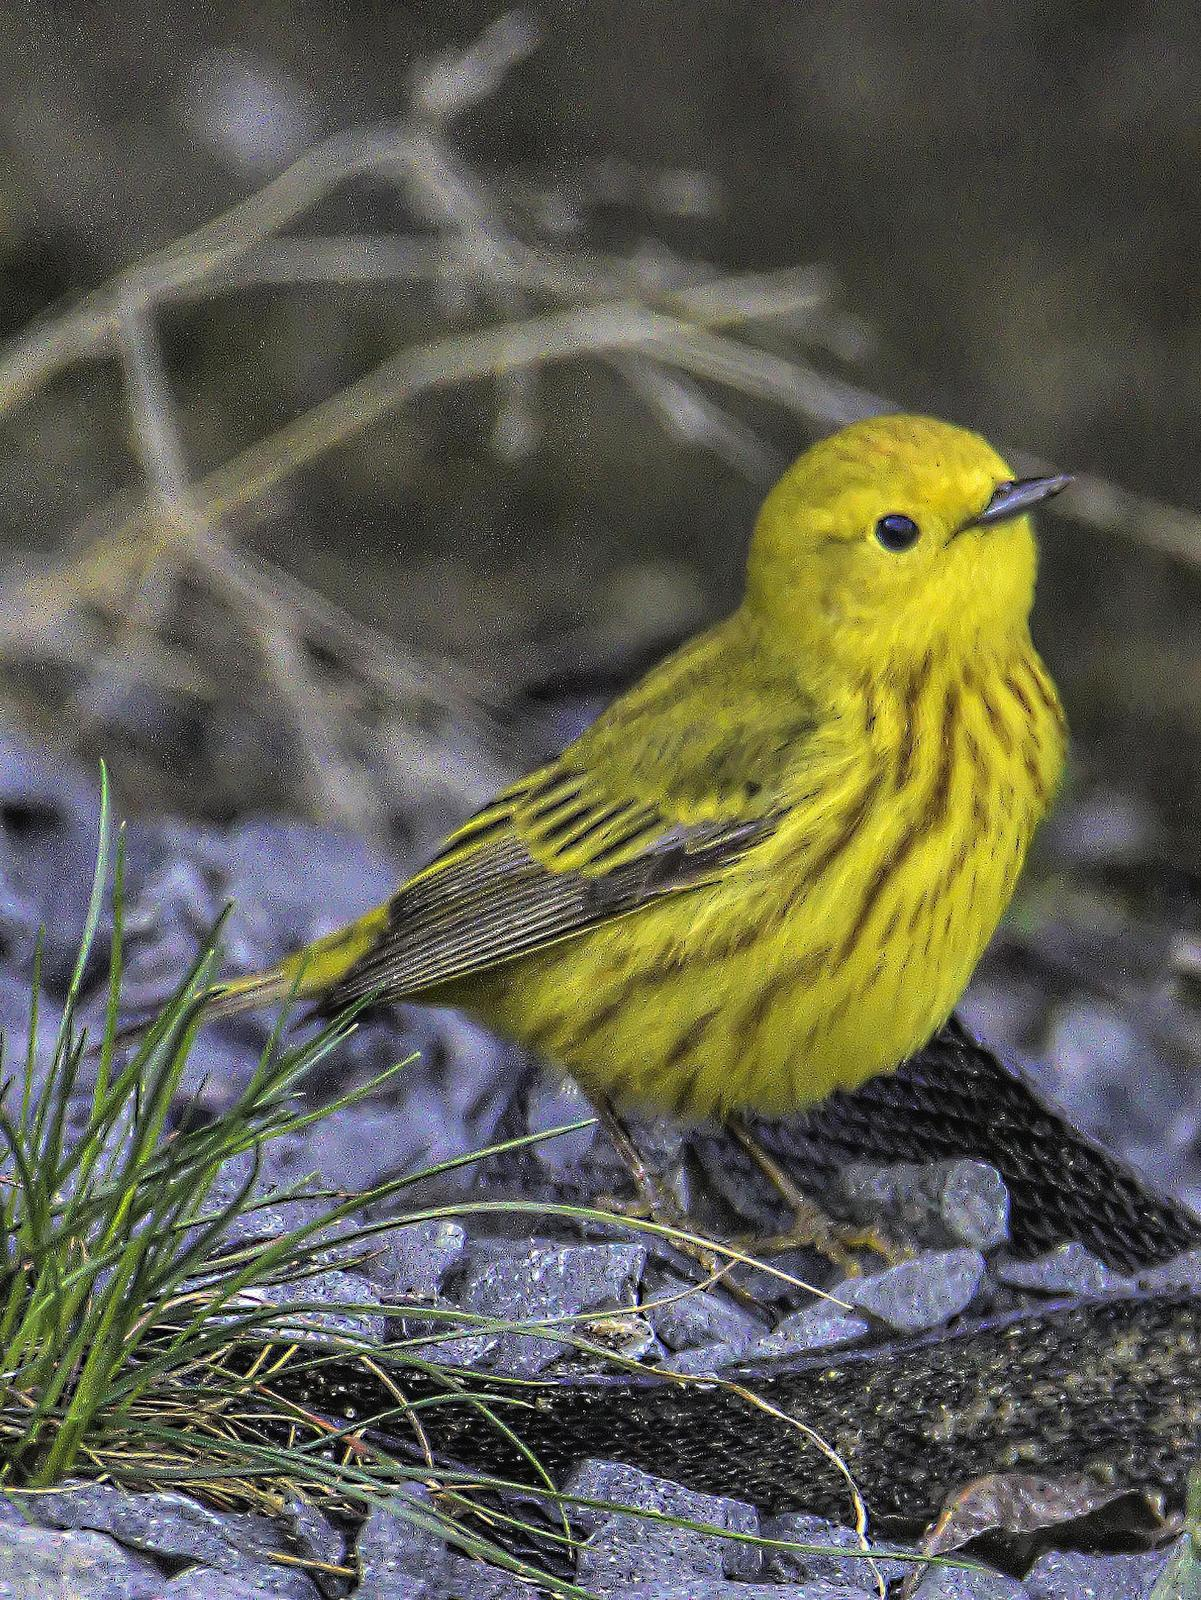 Yellow Warbler Photo by Dan Tallman